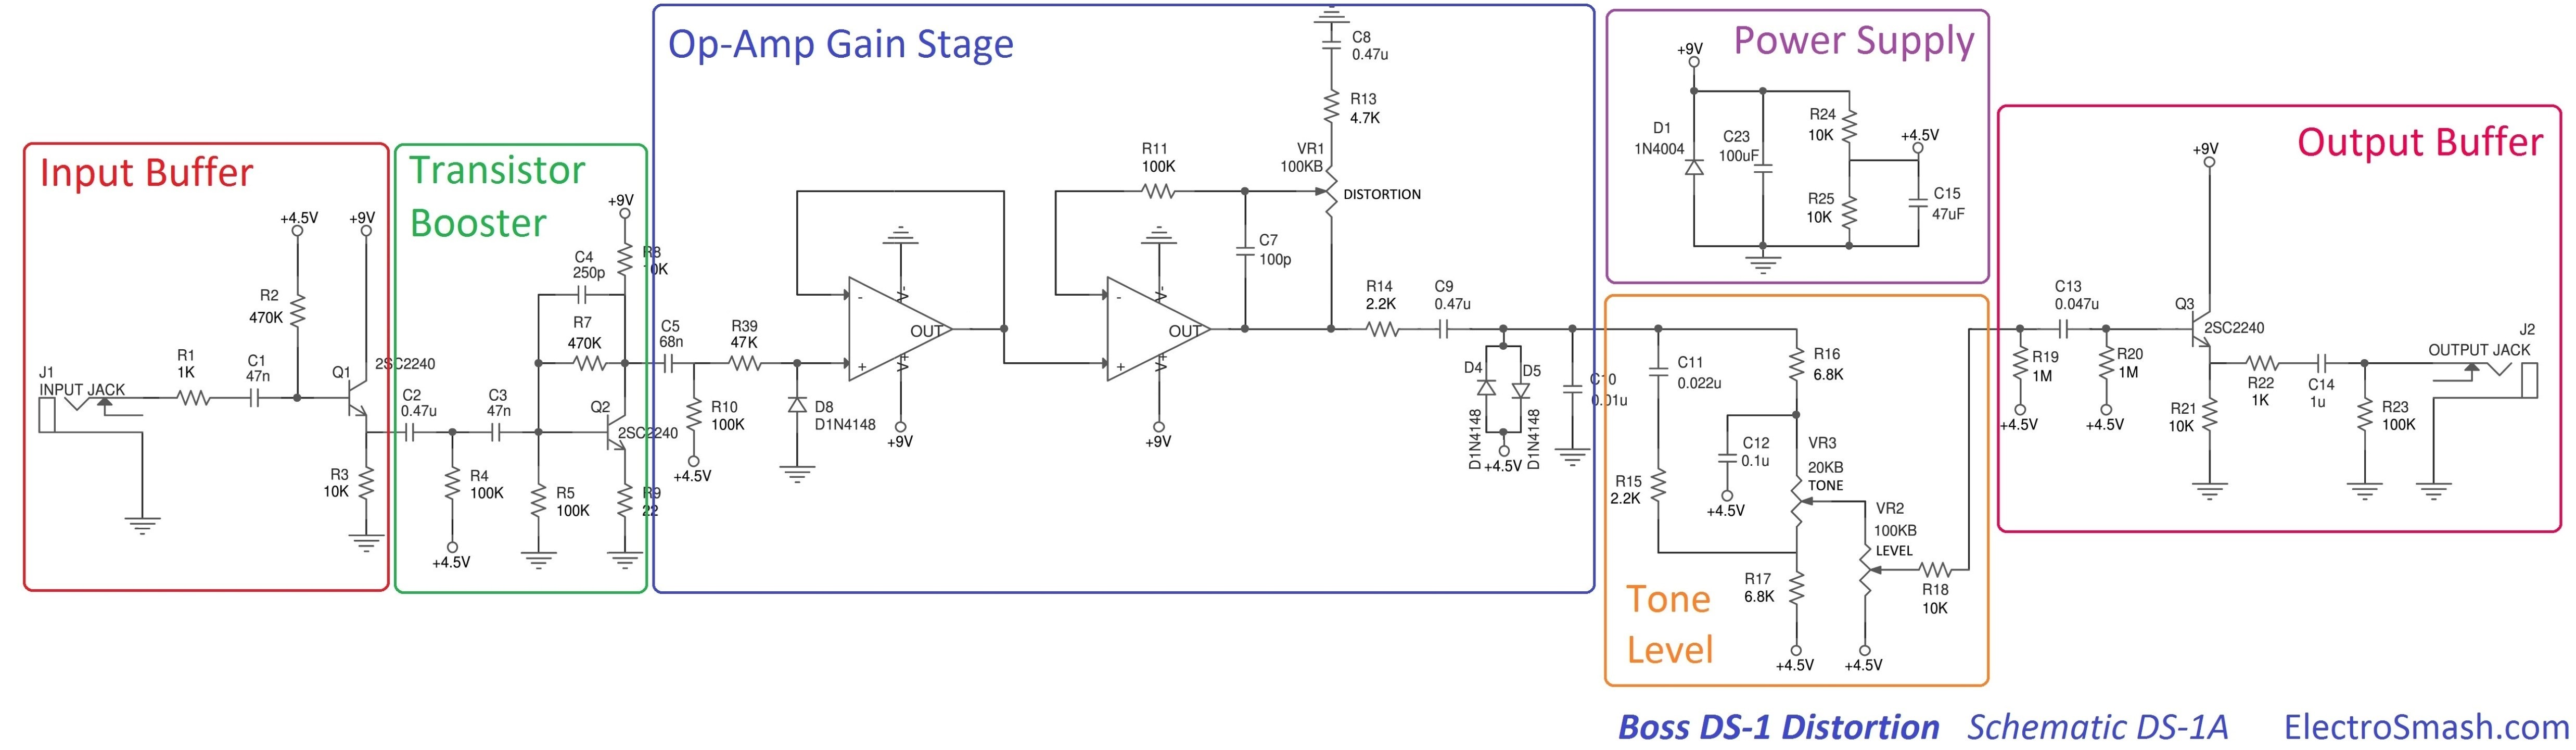 electrosmash boss ds1 distortion analysis boss ds1 distortion schematic parts small